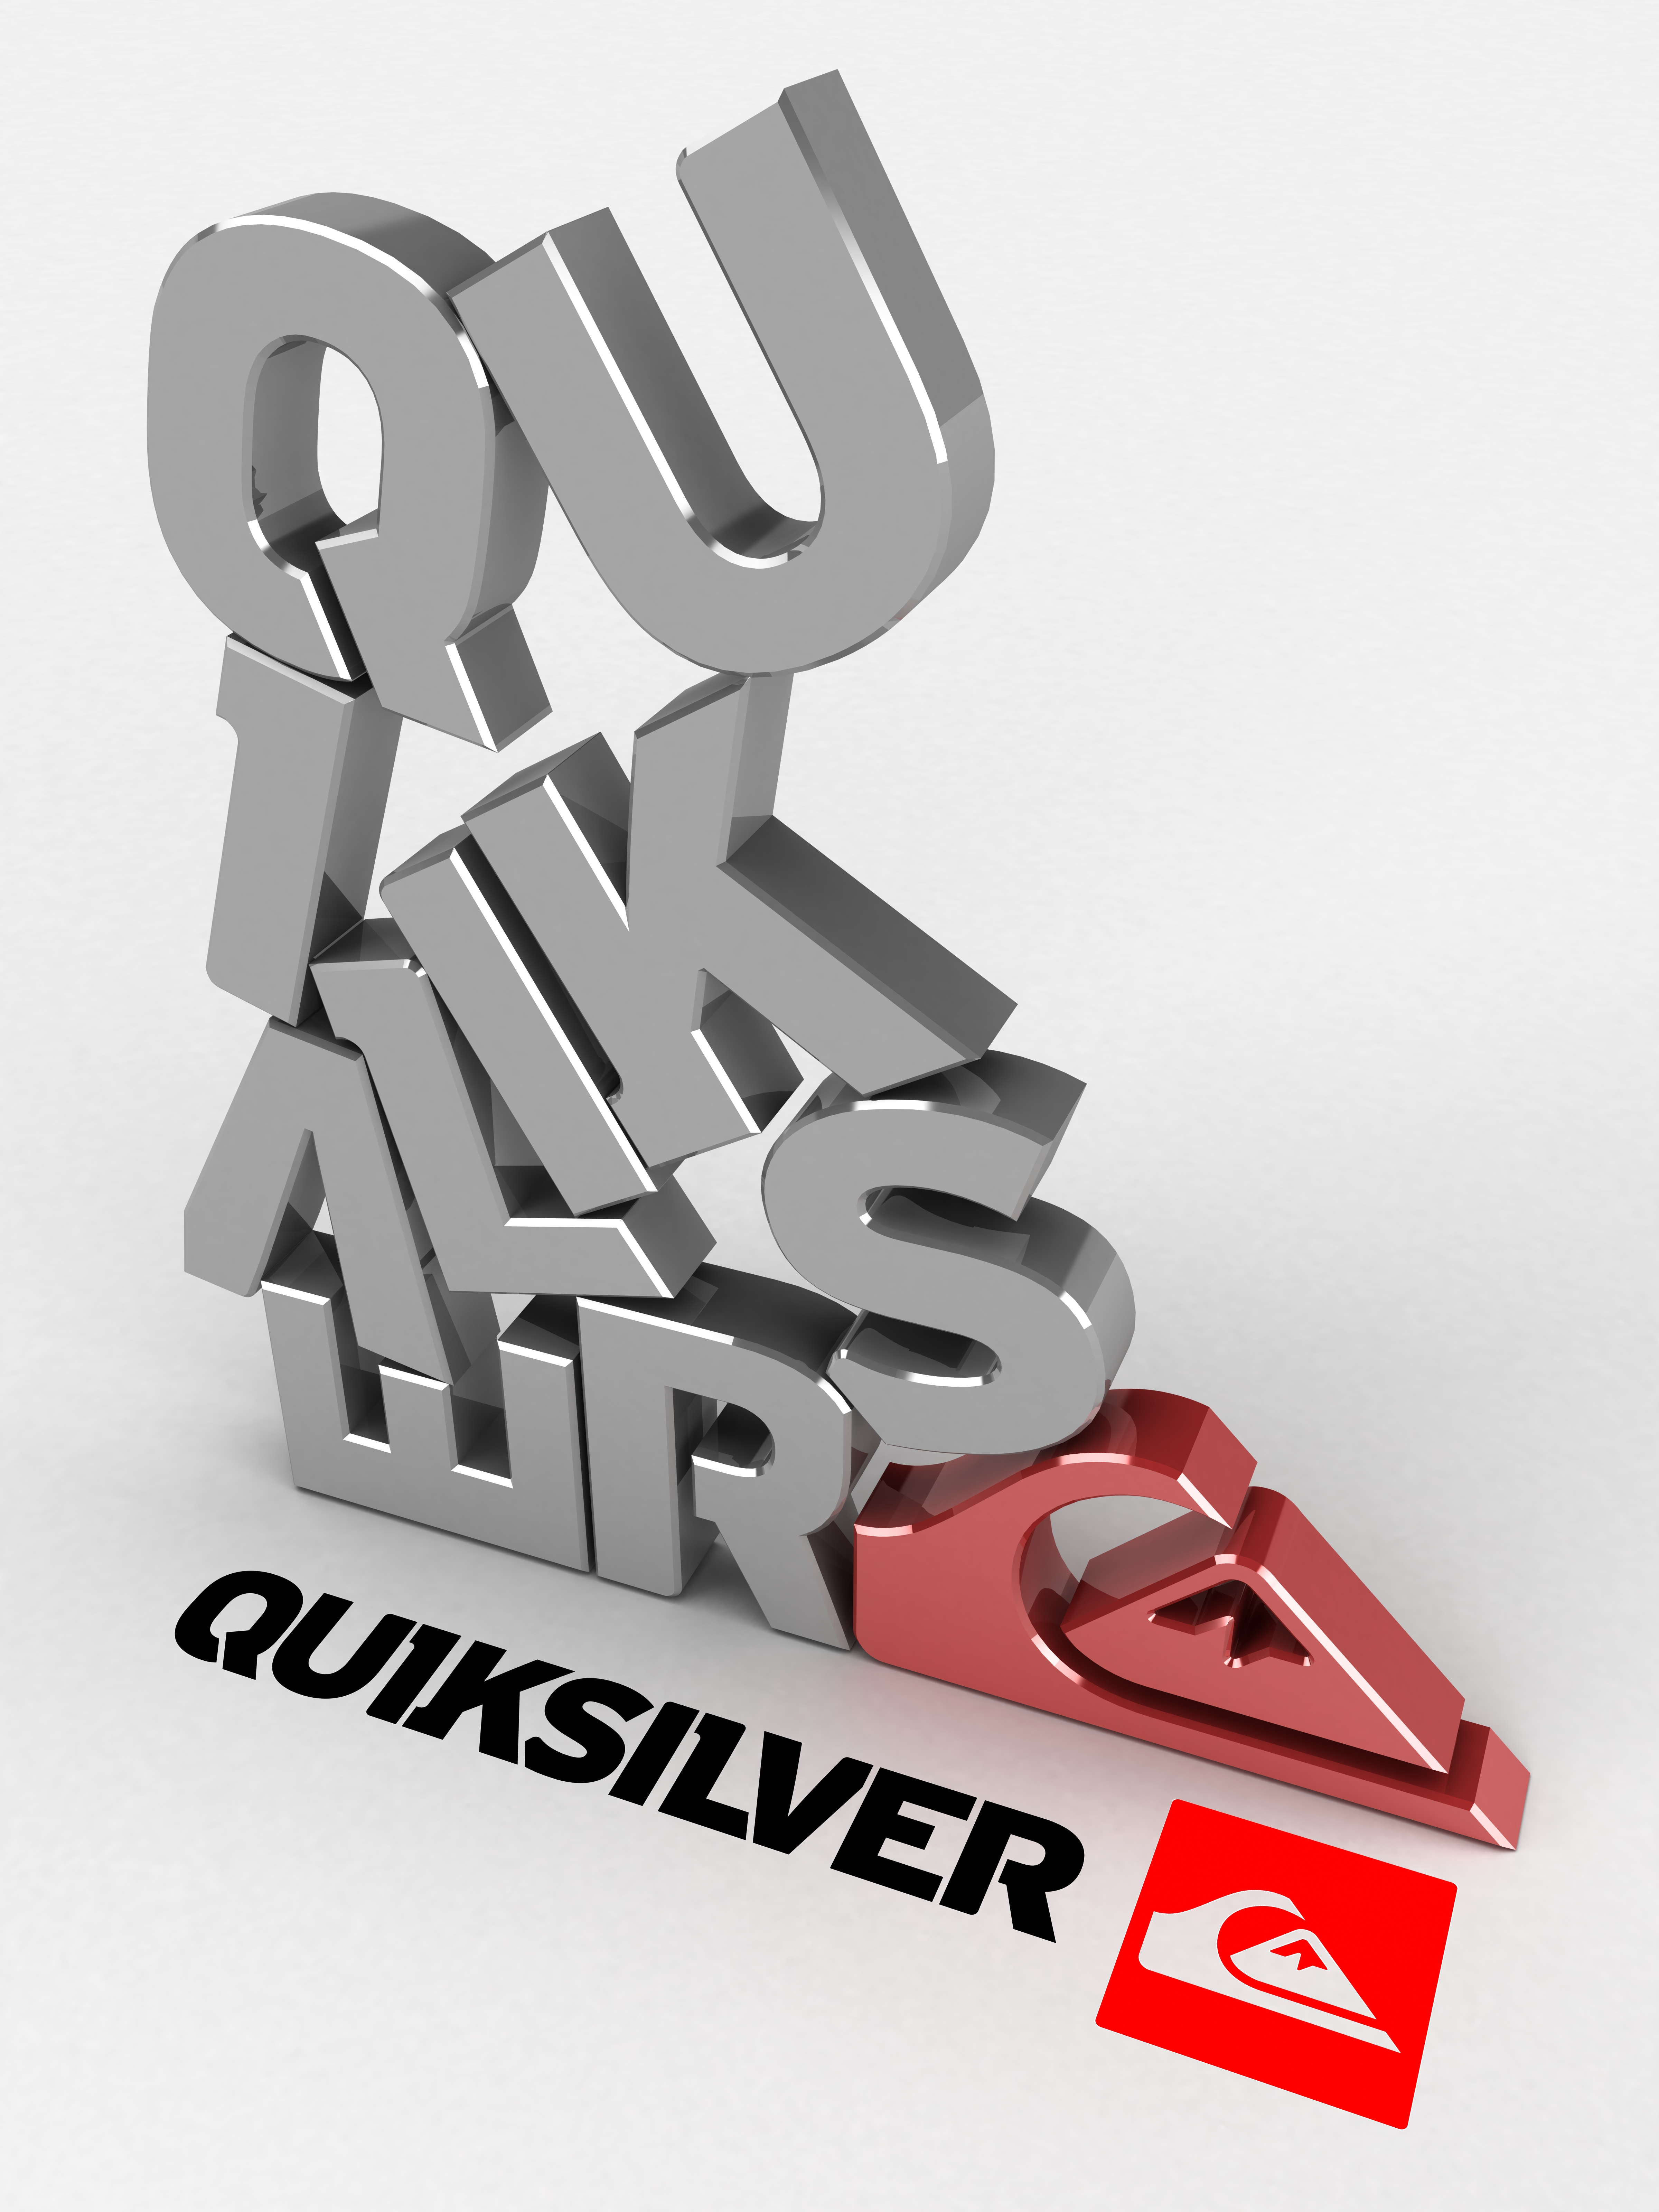 Quiksilver logo download millionssubmitted quiksilver logo download sciox Choice Image